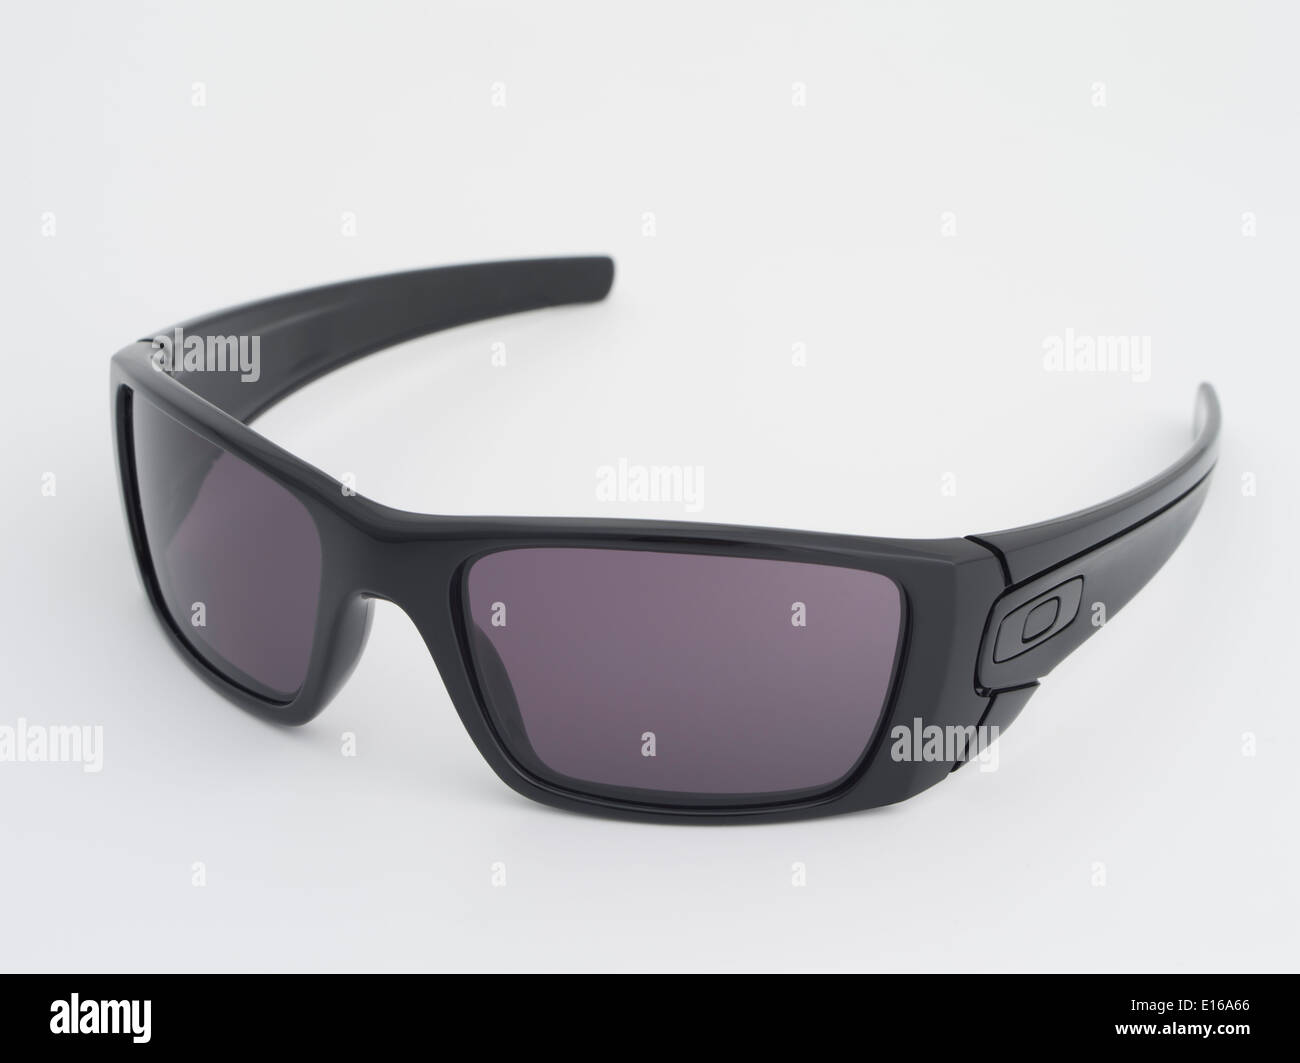 Oakley Fuel Cell Polished Black Sunglasses with warm grey lenses. Oakley inc based in Foothill Ranch, California - Stock Image